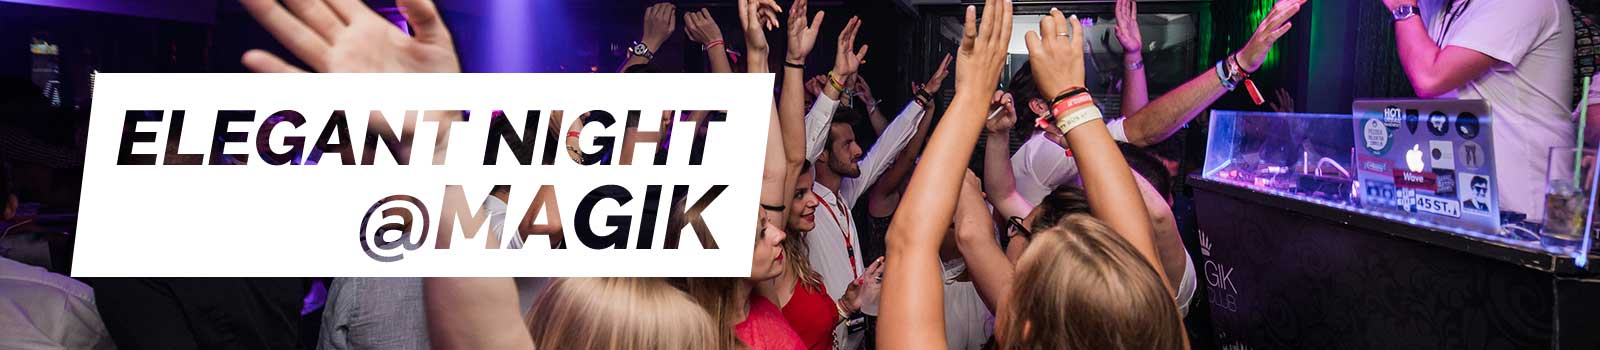 Elegant night at magik Club - Zante